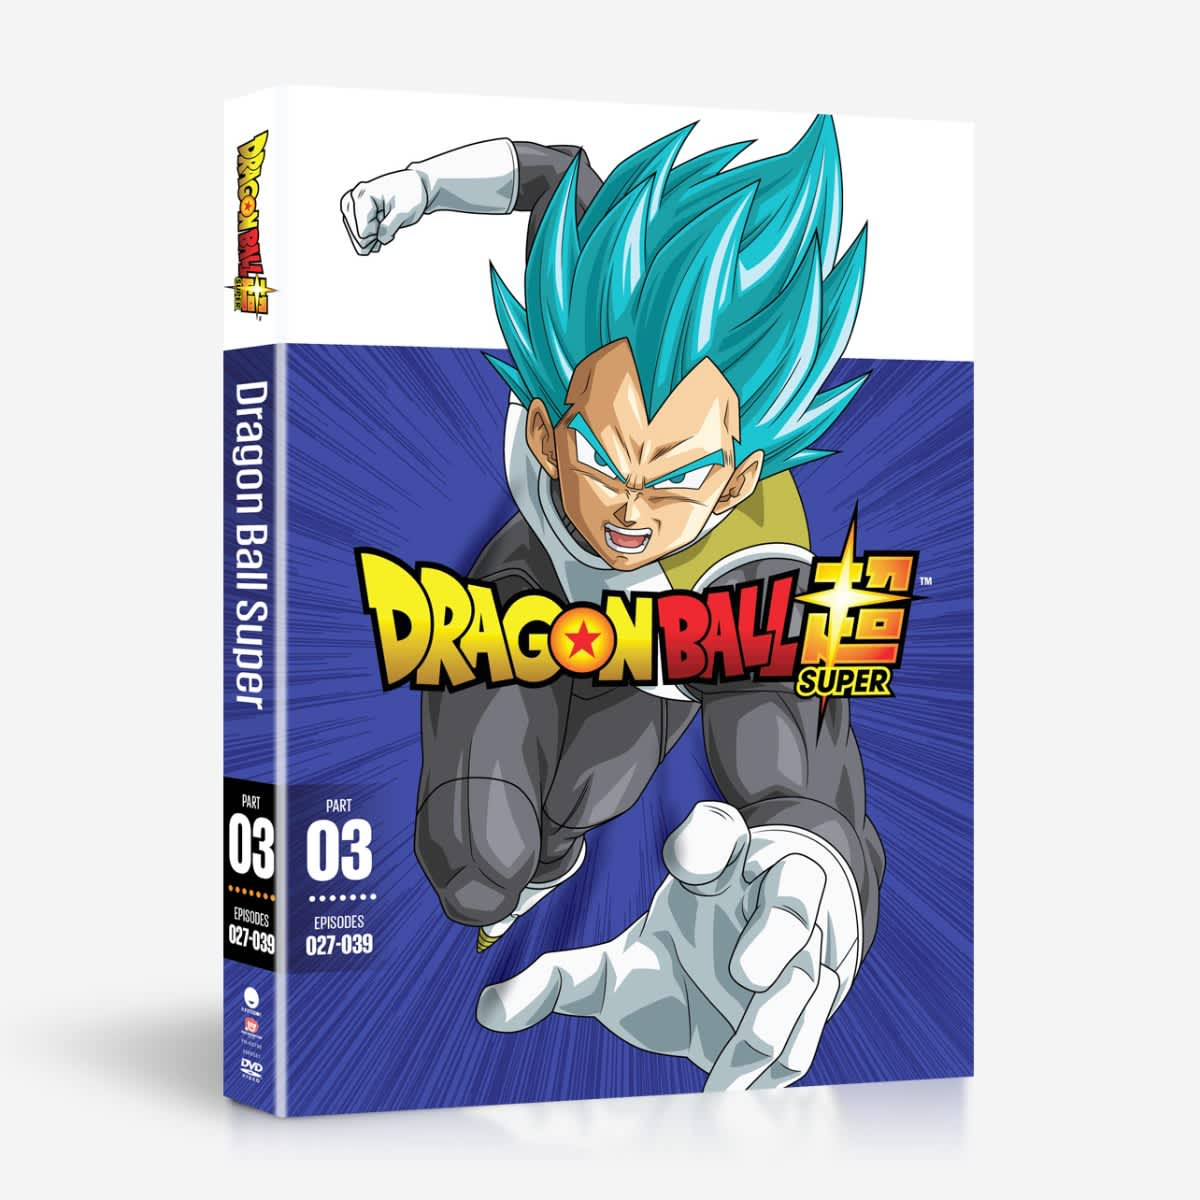 Dragon Ball Super Part 3 DVD 704400037986